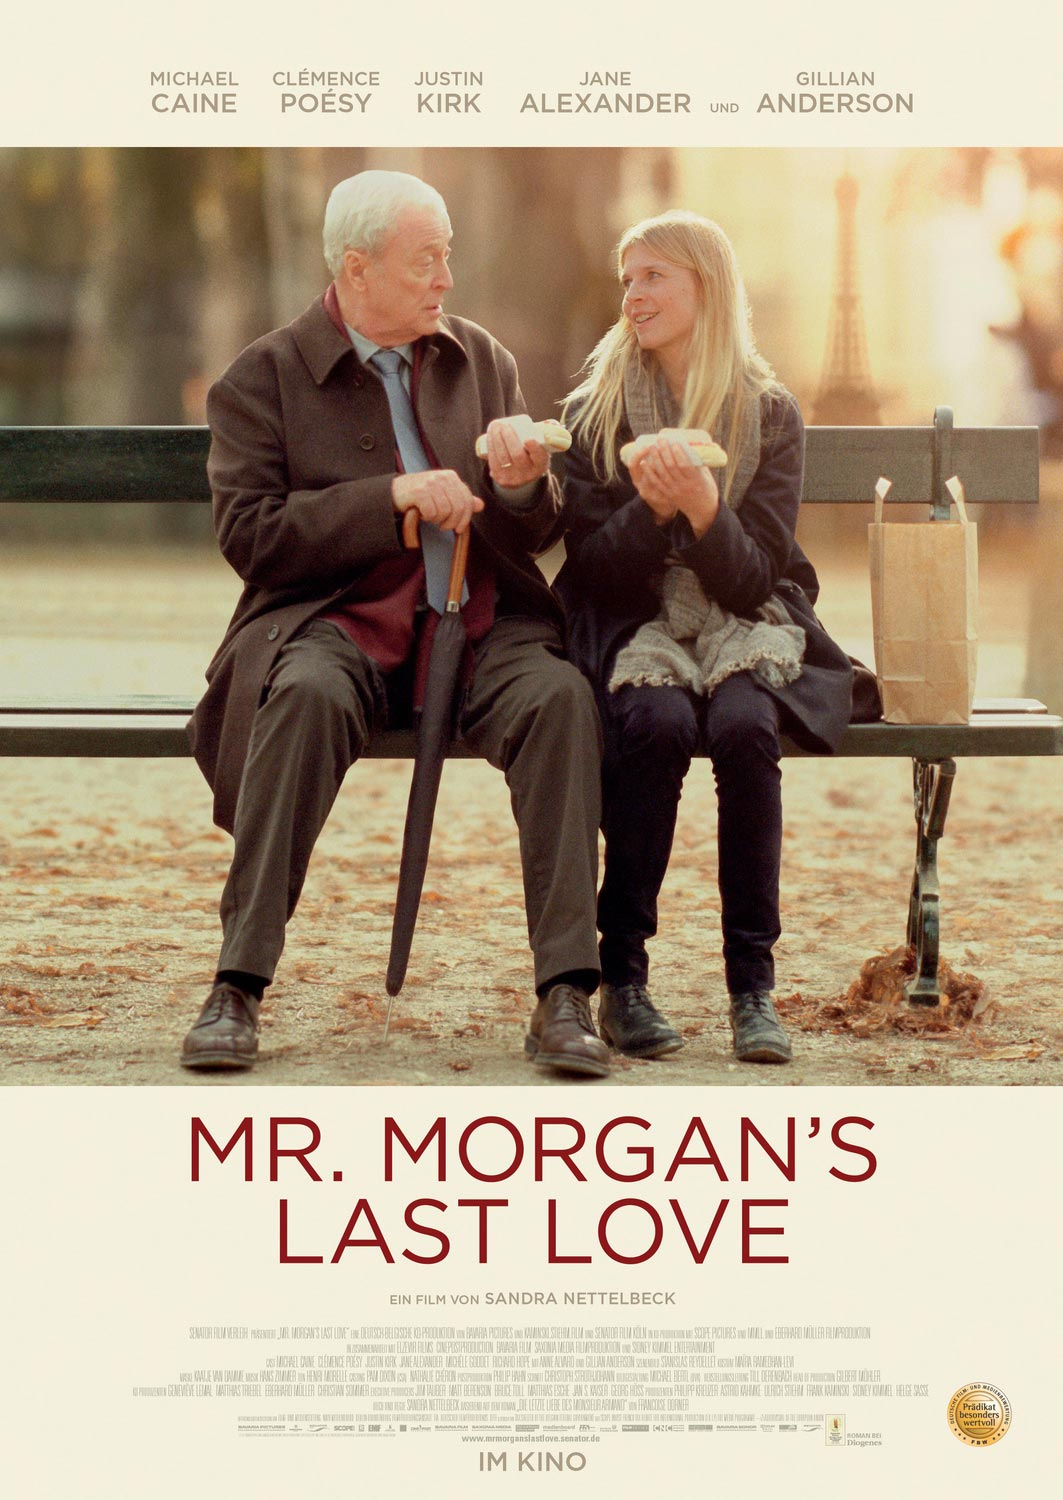 http://www.agentsofguard.com/wp-content/uploads/2013/10/Mr-Morgans-Last-Love-Poster1.jpg